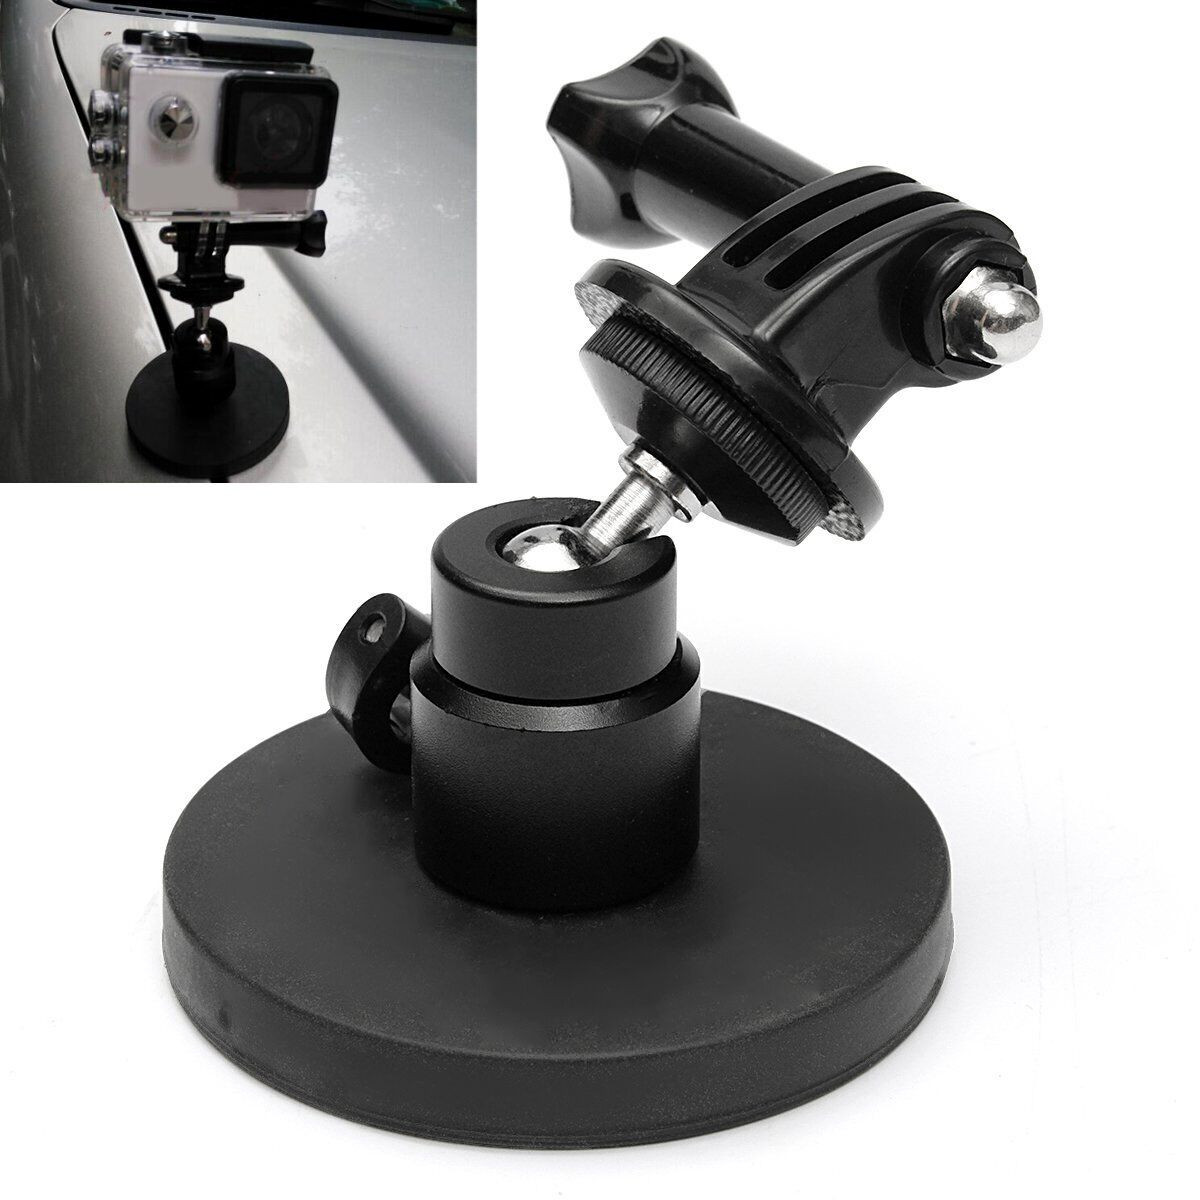 Magent magnetic car suction cup mount holder stand for gopro hero2 3 3 plus 4 sale banggood